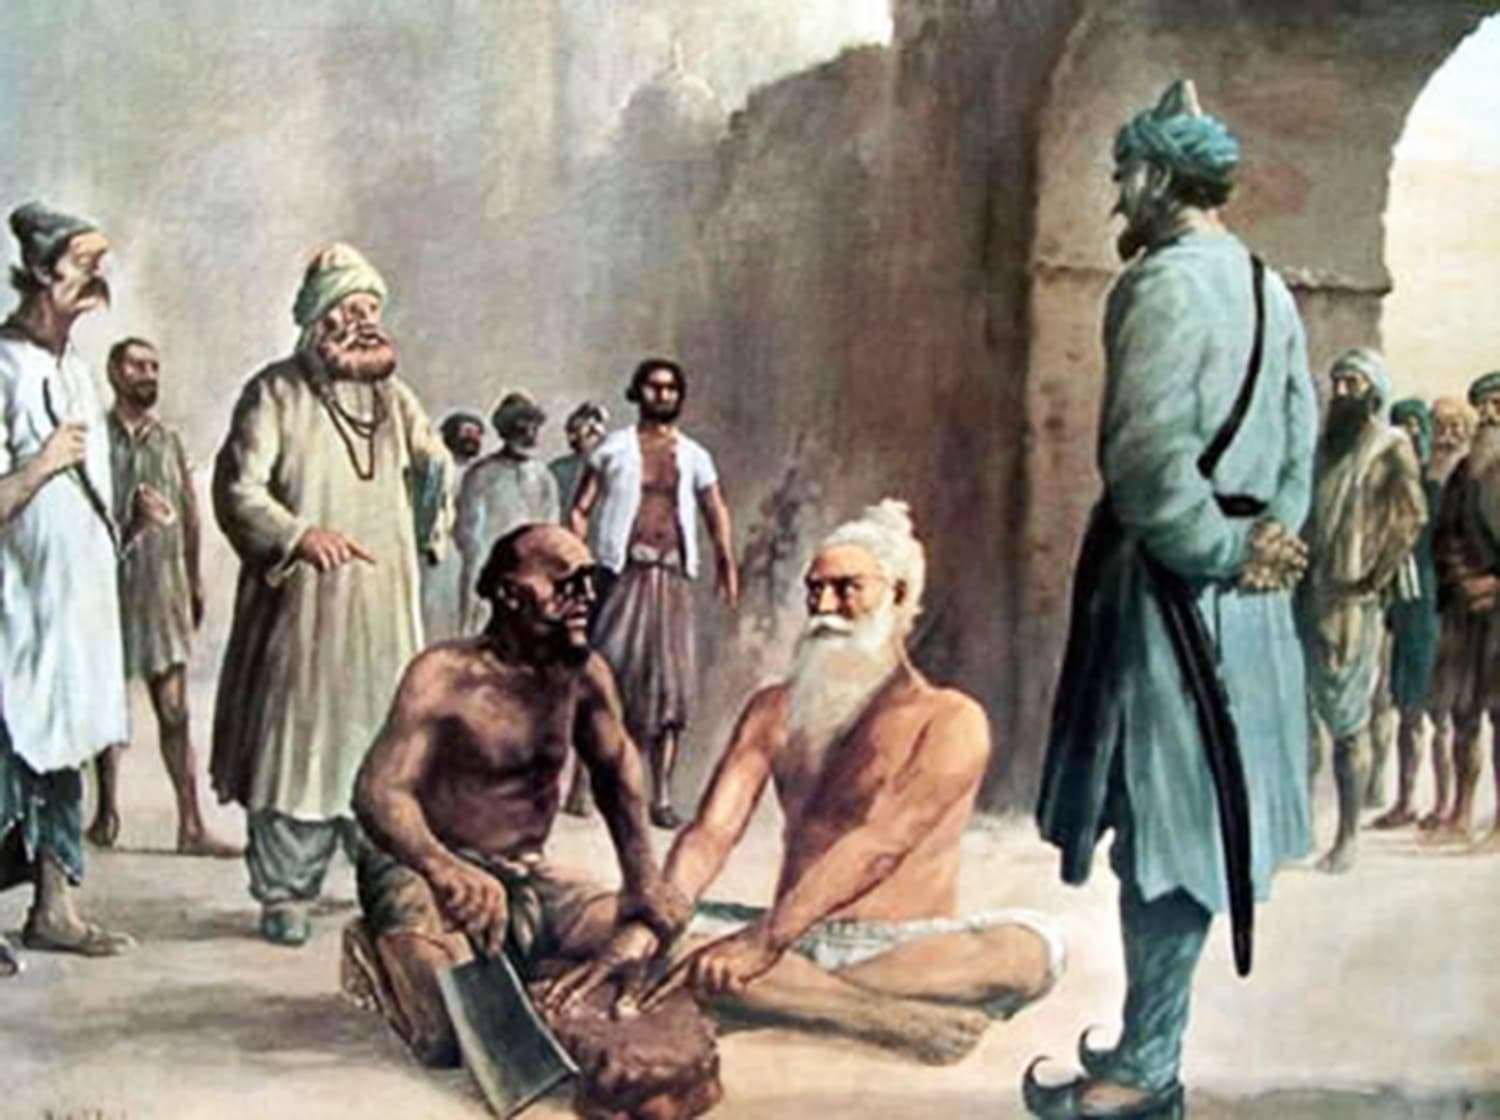 Mani Singh, priest of the Harmandir Sahib, is believed to have been executed by the Lahore governor close to the place where the Gurdwara Shaheed Ganj stands. (Credit: Gurbar Akaal / Wikimedia Commons)